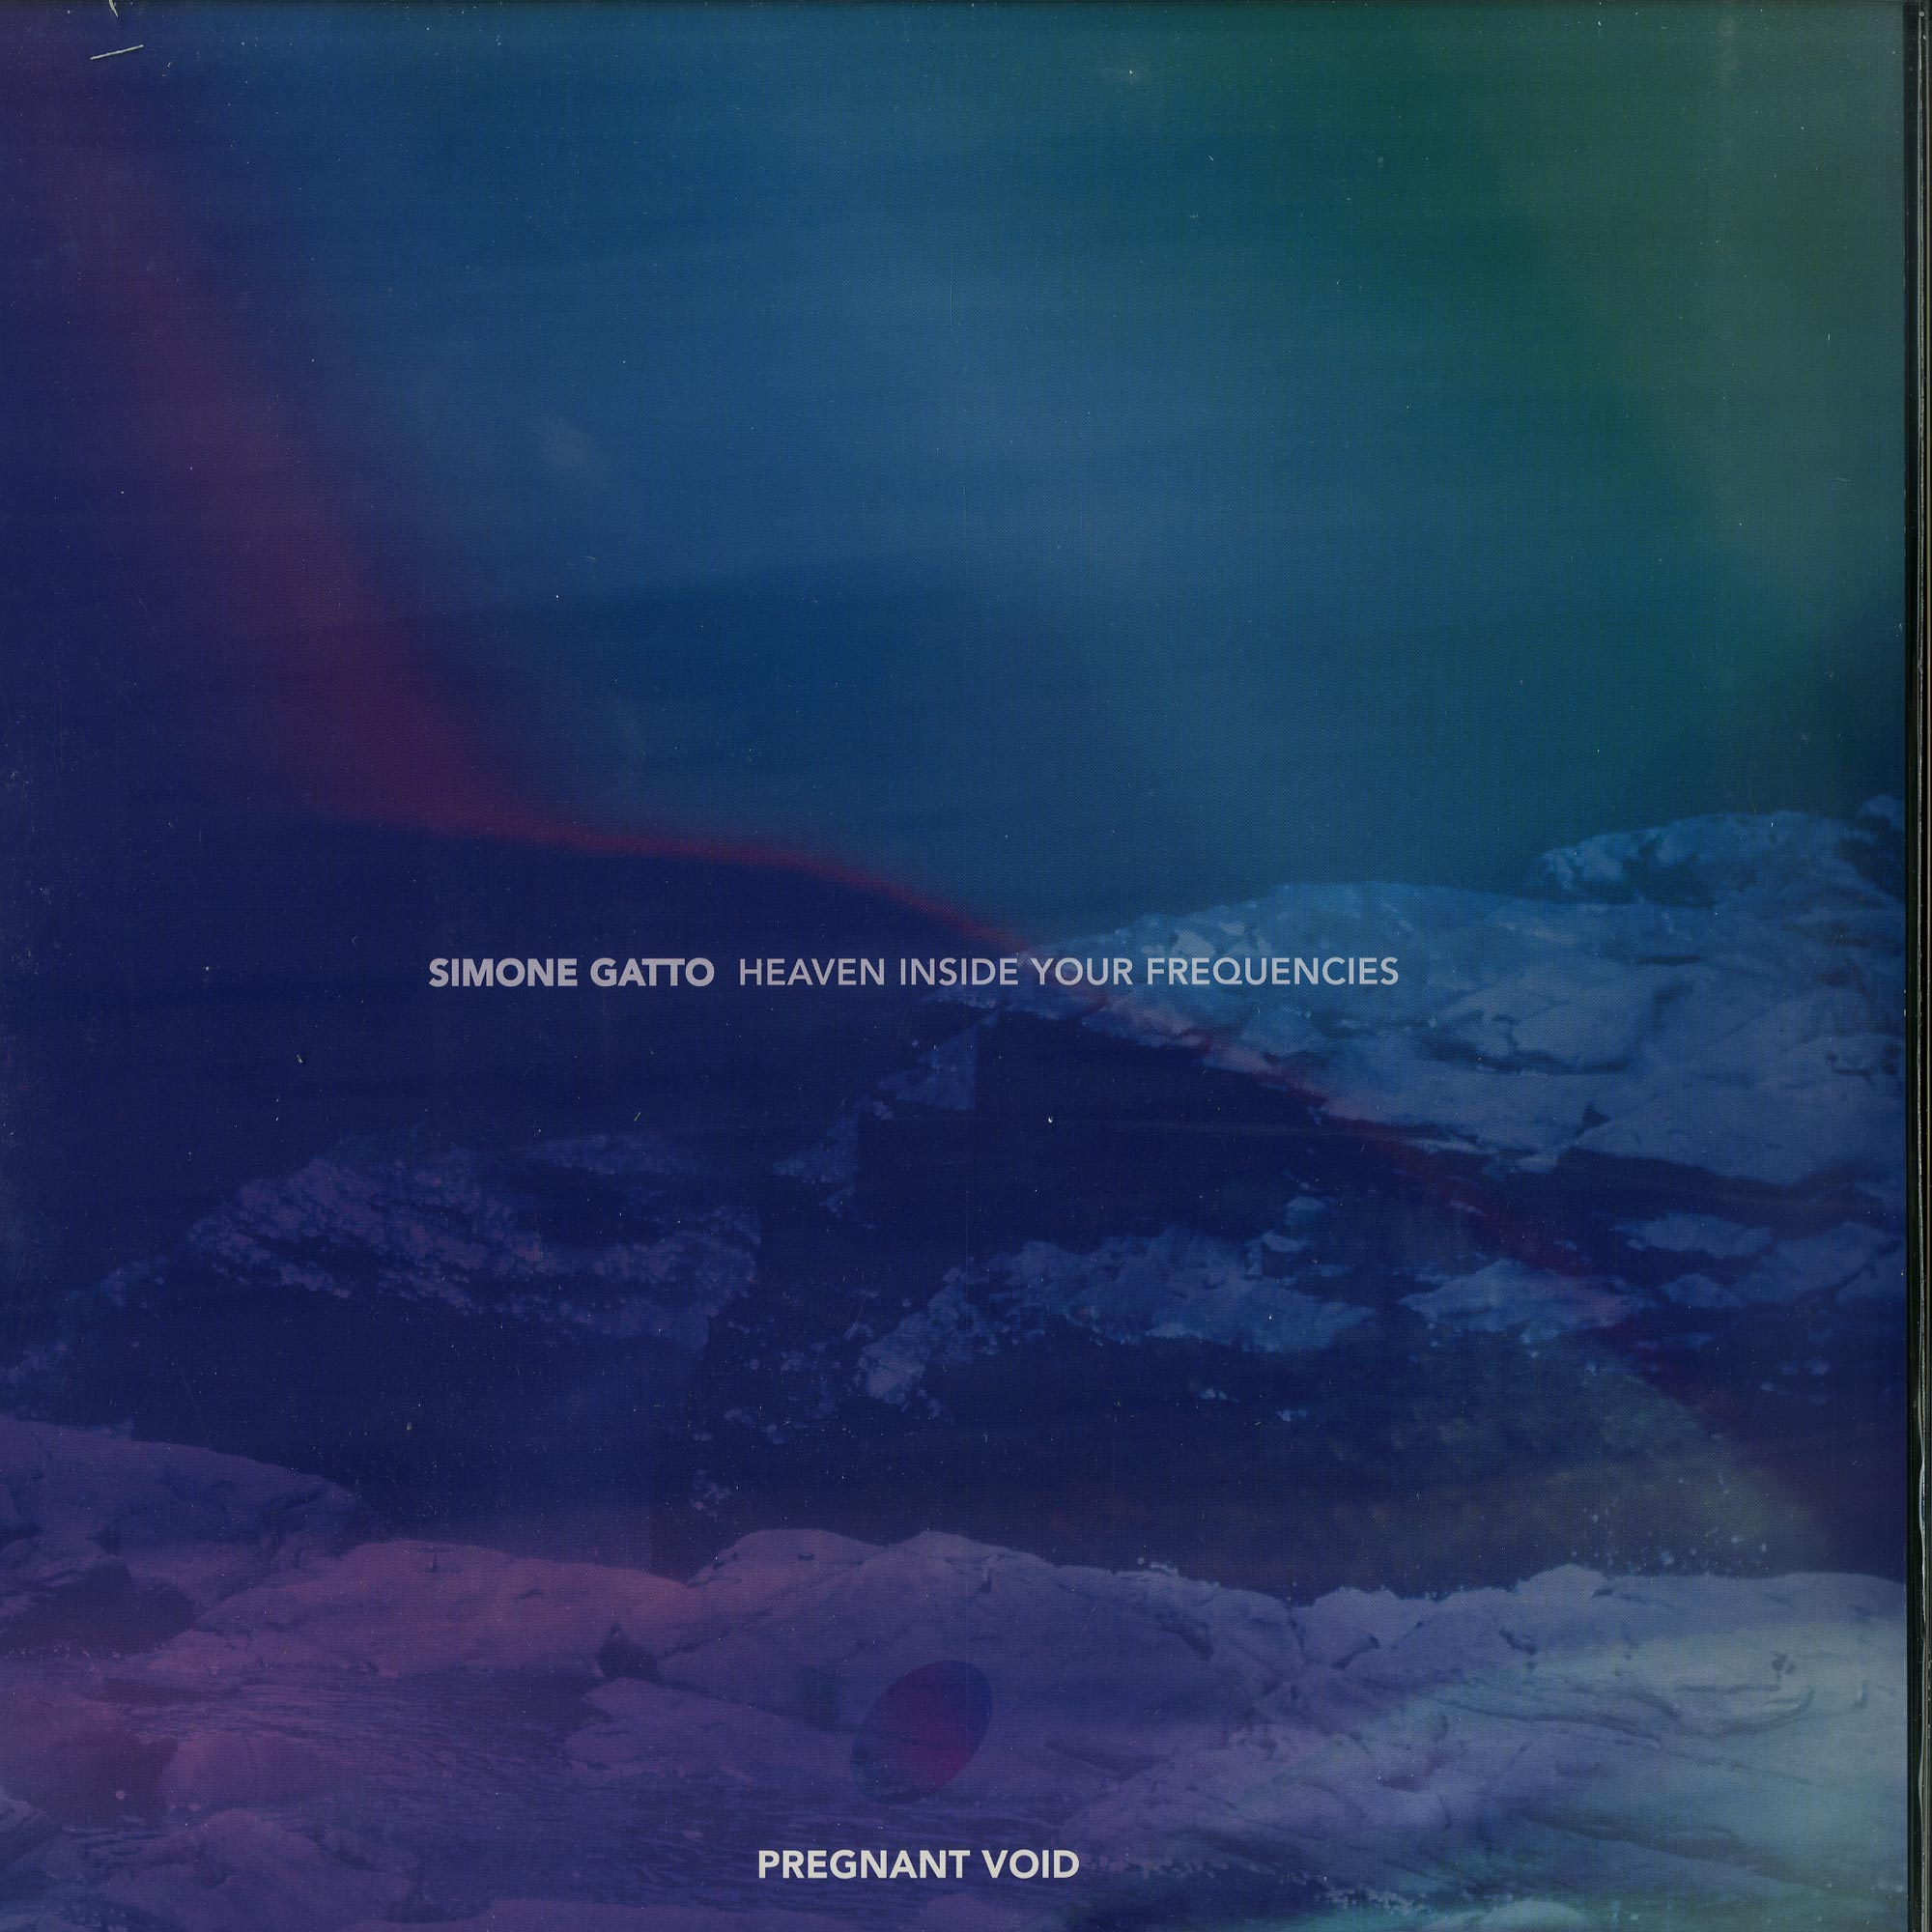 Simone Gatto - HEAVEN INSIDE YOUR FREQUENCIES PT. 1